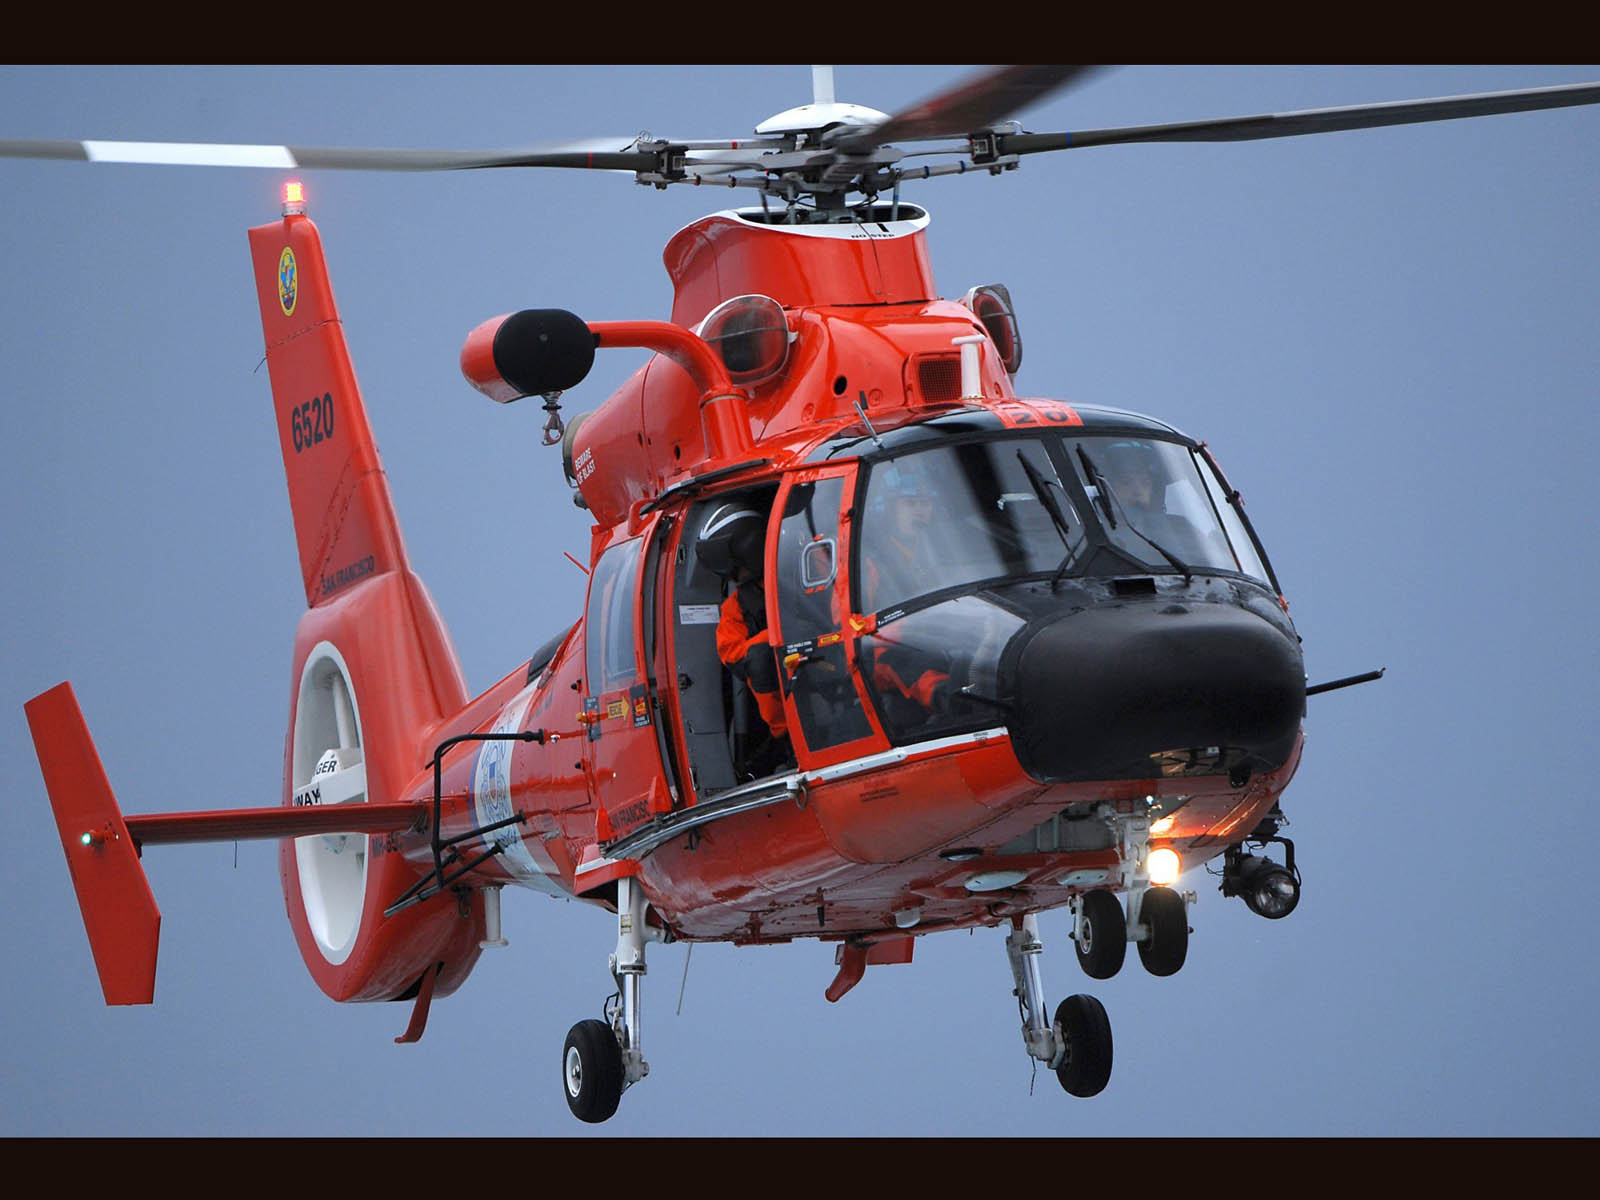 Cool Cars Wallpaper Background Wallpapers Hh 65 Dolphin Us Coast Guard Helicopter Wallpapers